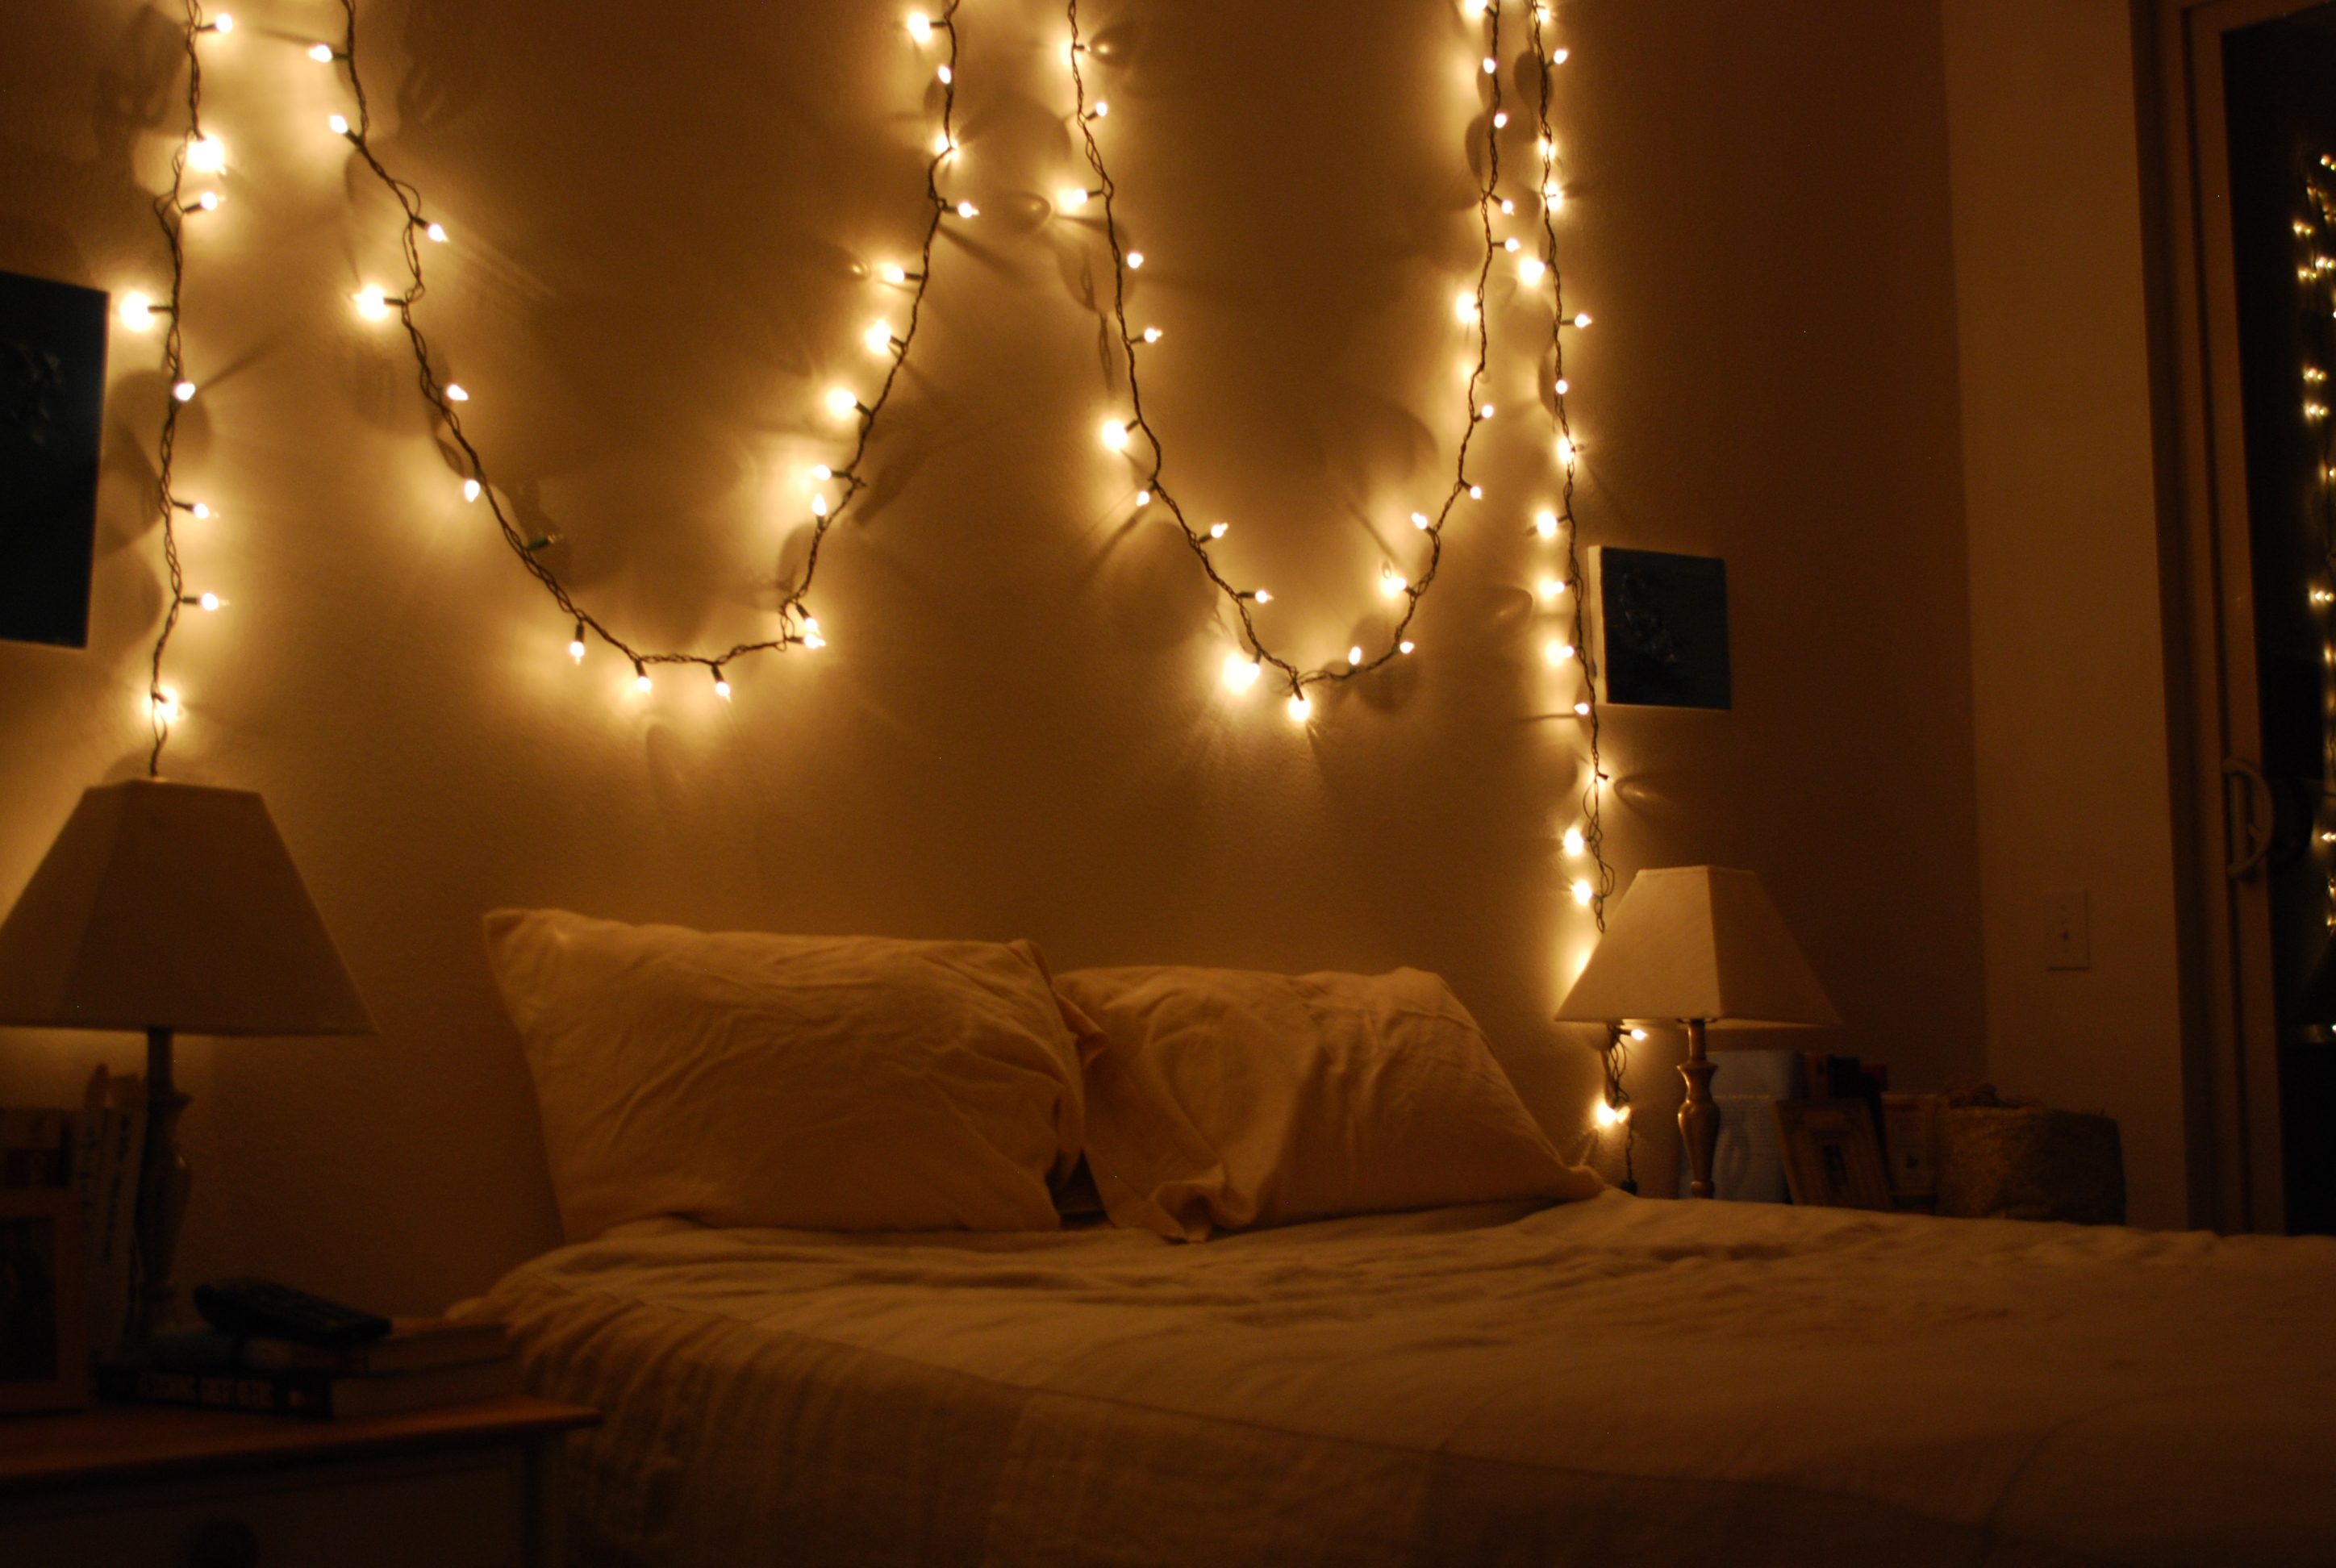 17+ images about bedroom on pinterest | string lights, light